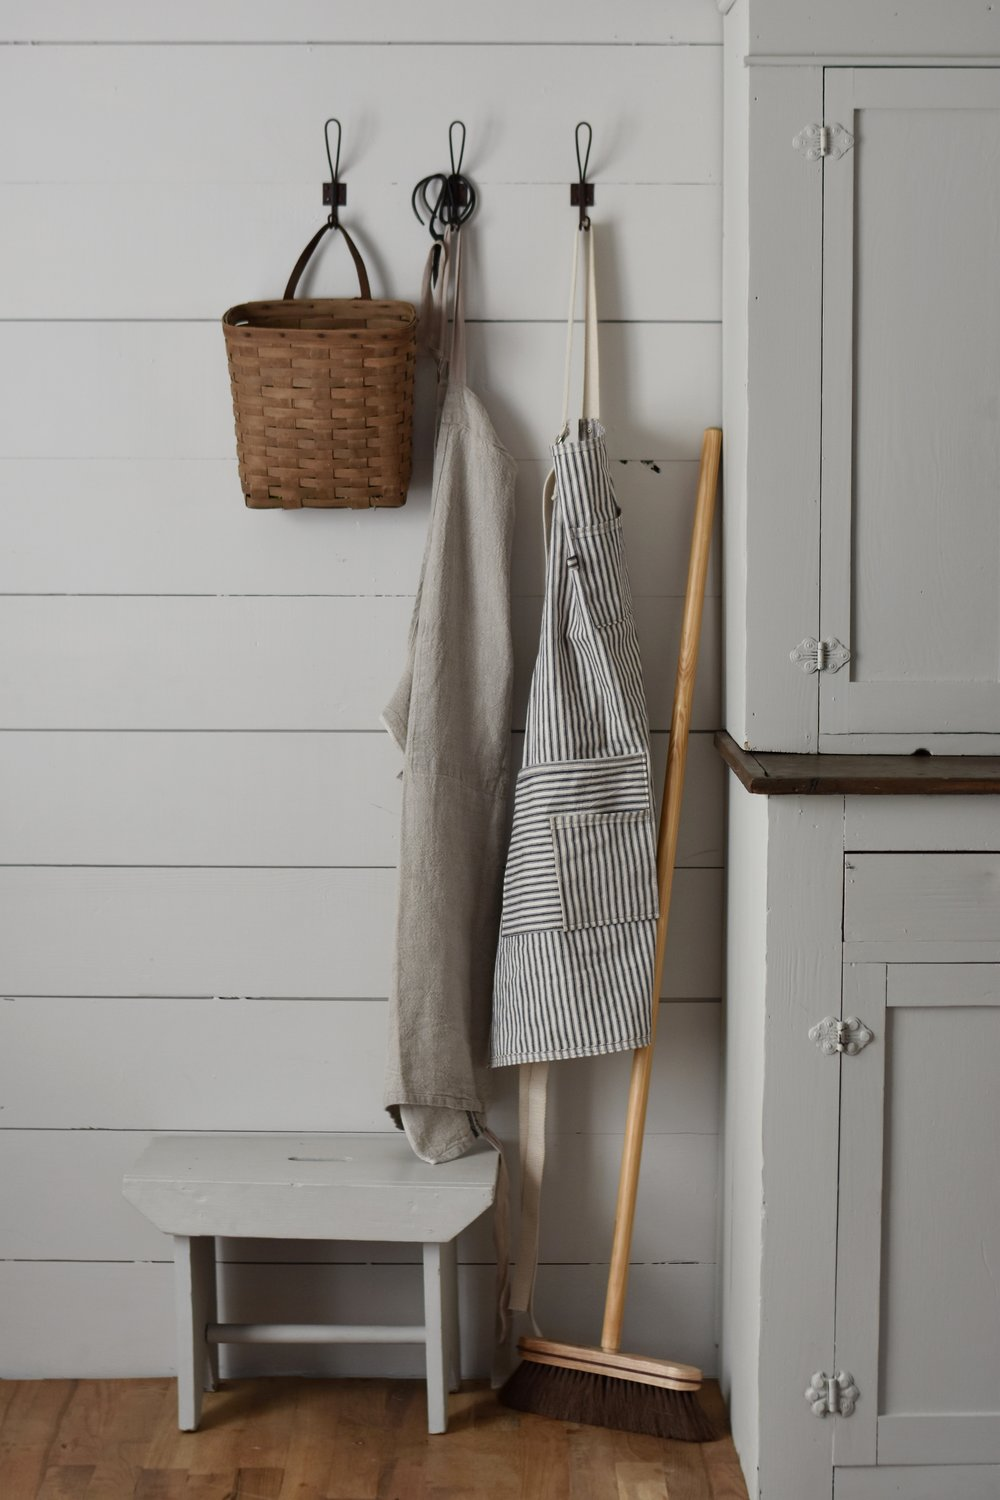 wooden broom - beautifully  leaned against the wall or the cabinet. it is the prettiest broom within easy reach for lifes everyday messes.